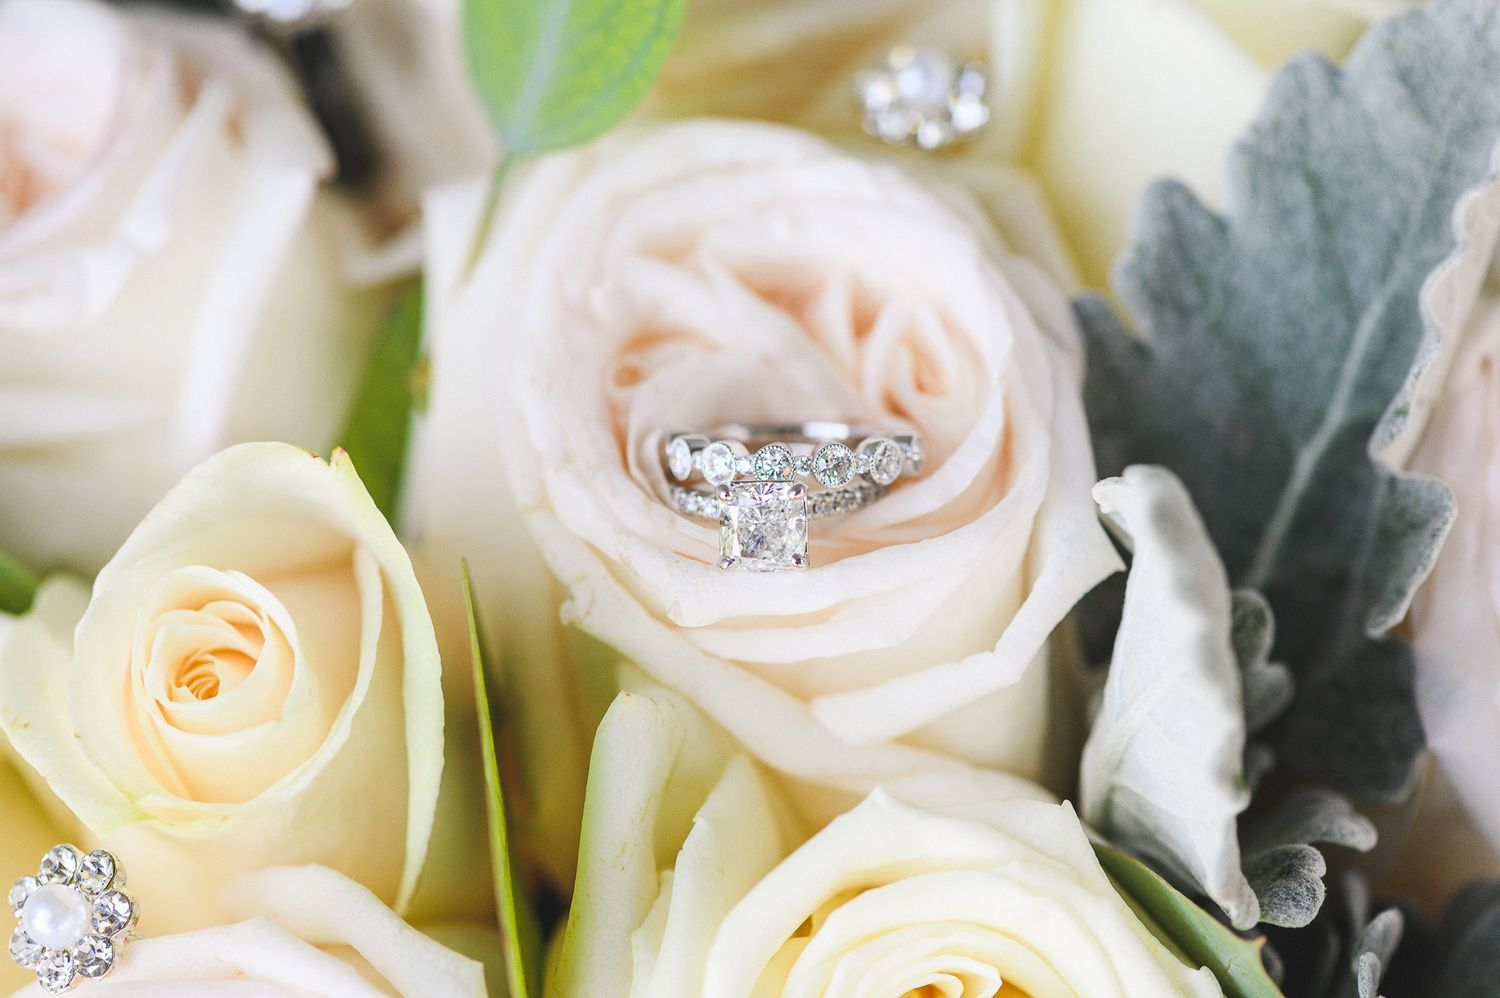 bouquet with bride and groom rings details